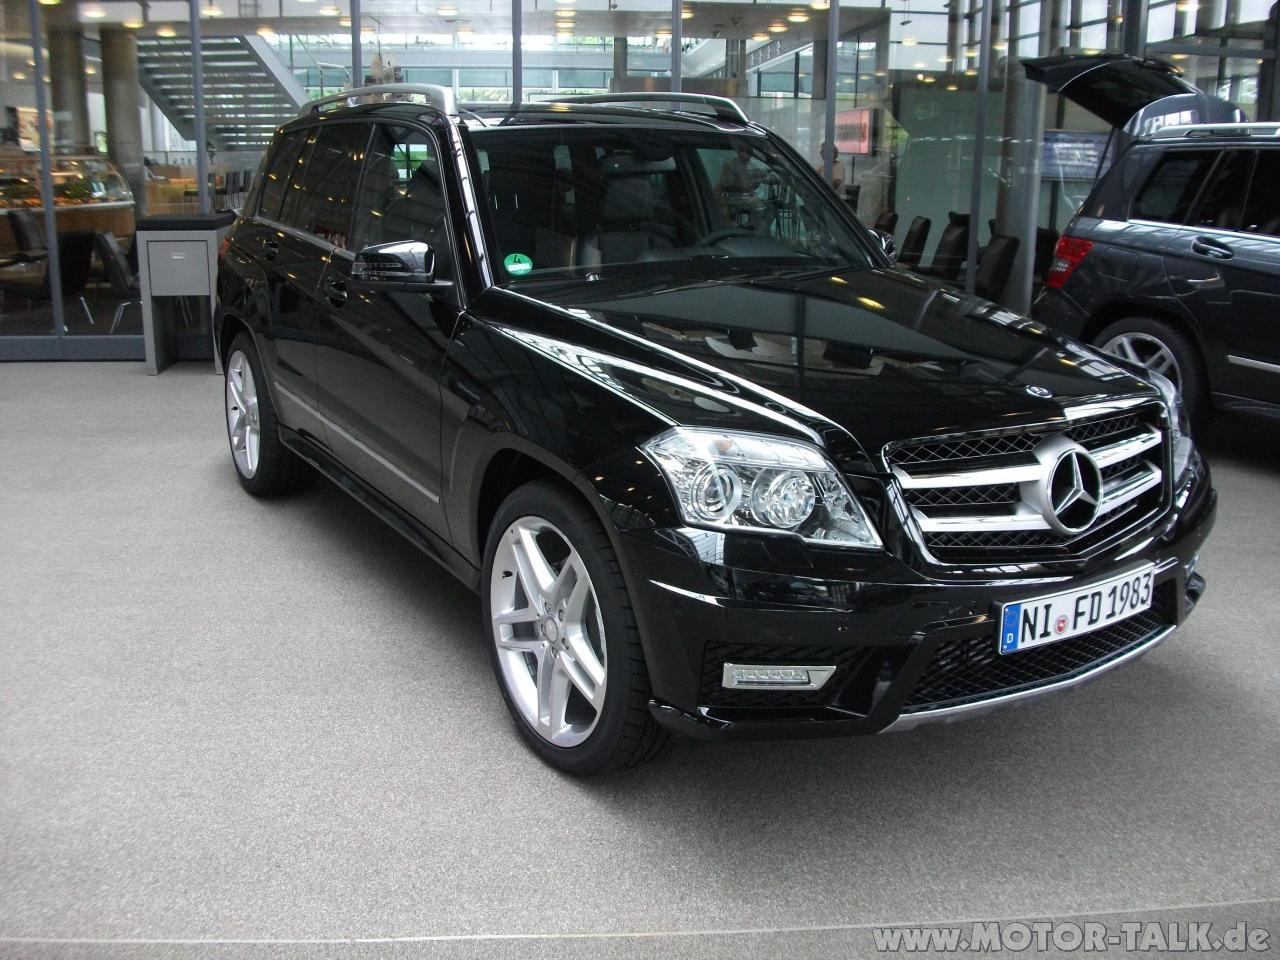 006 mein neuer glk 350 cdi 4matic mit amg paket mercedes glk 203465851. Black Bedroom Furniture Sets. Home Design Ideas